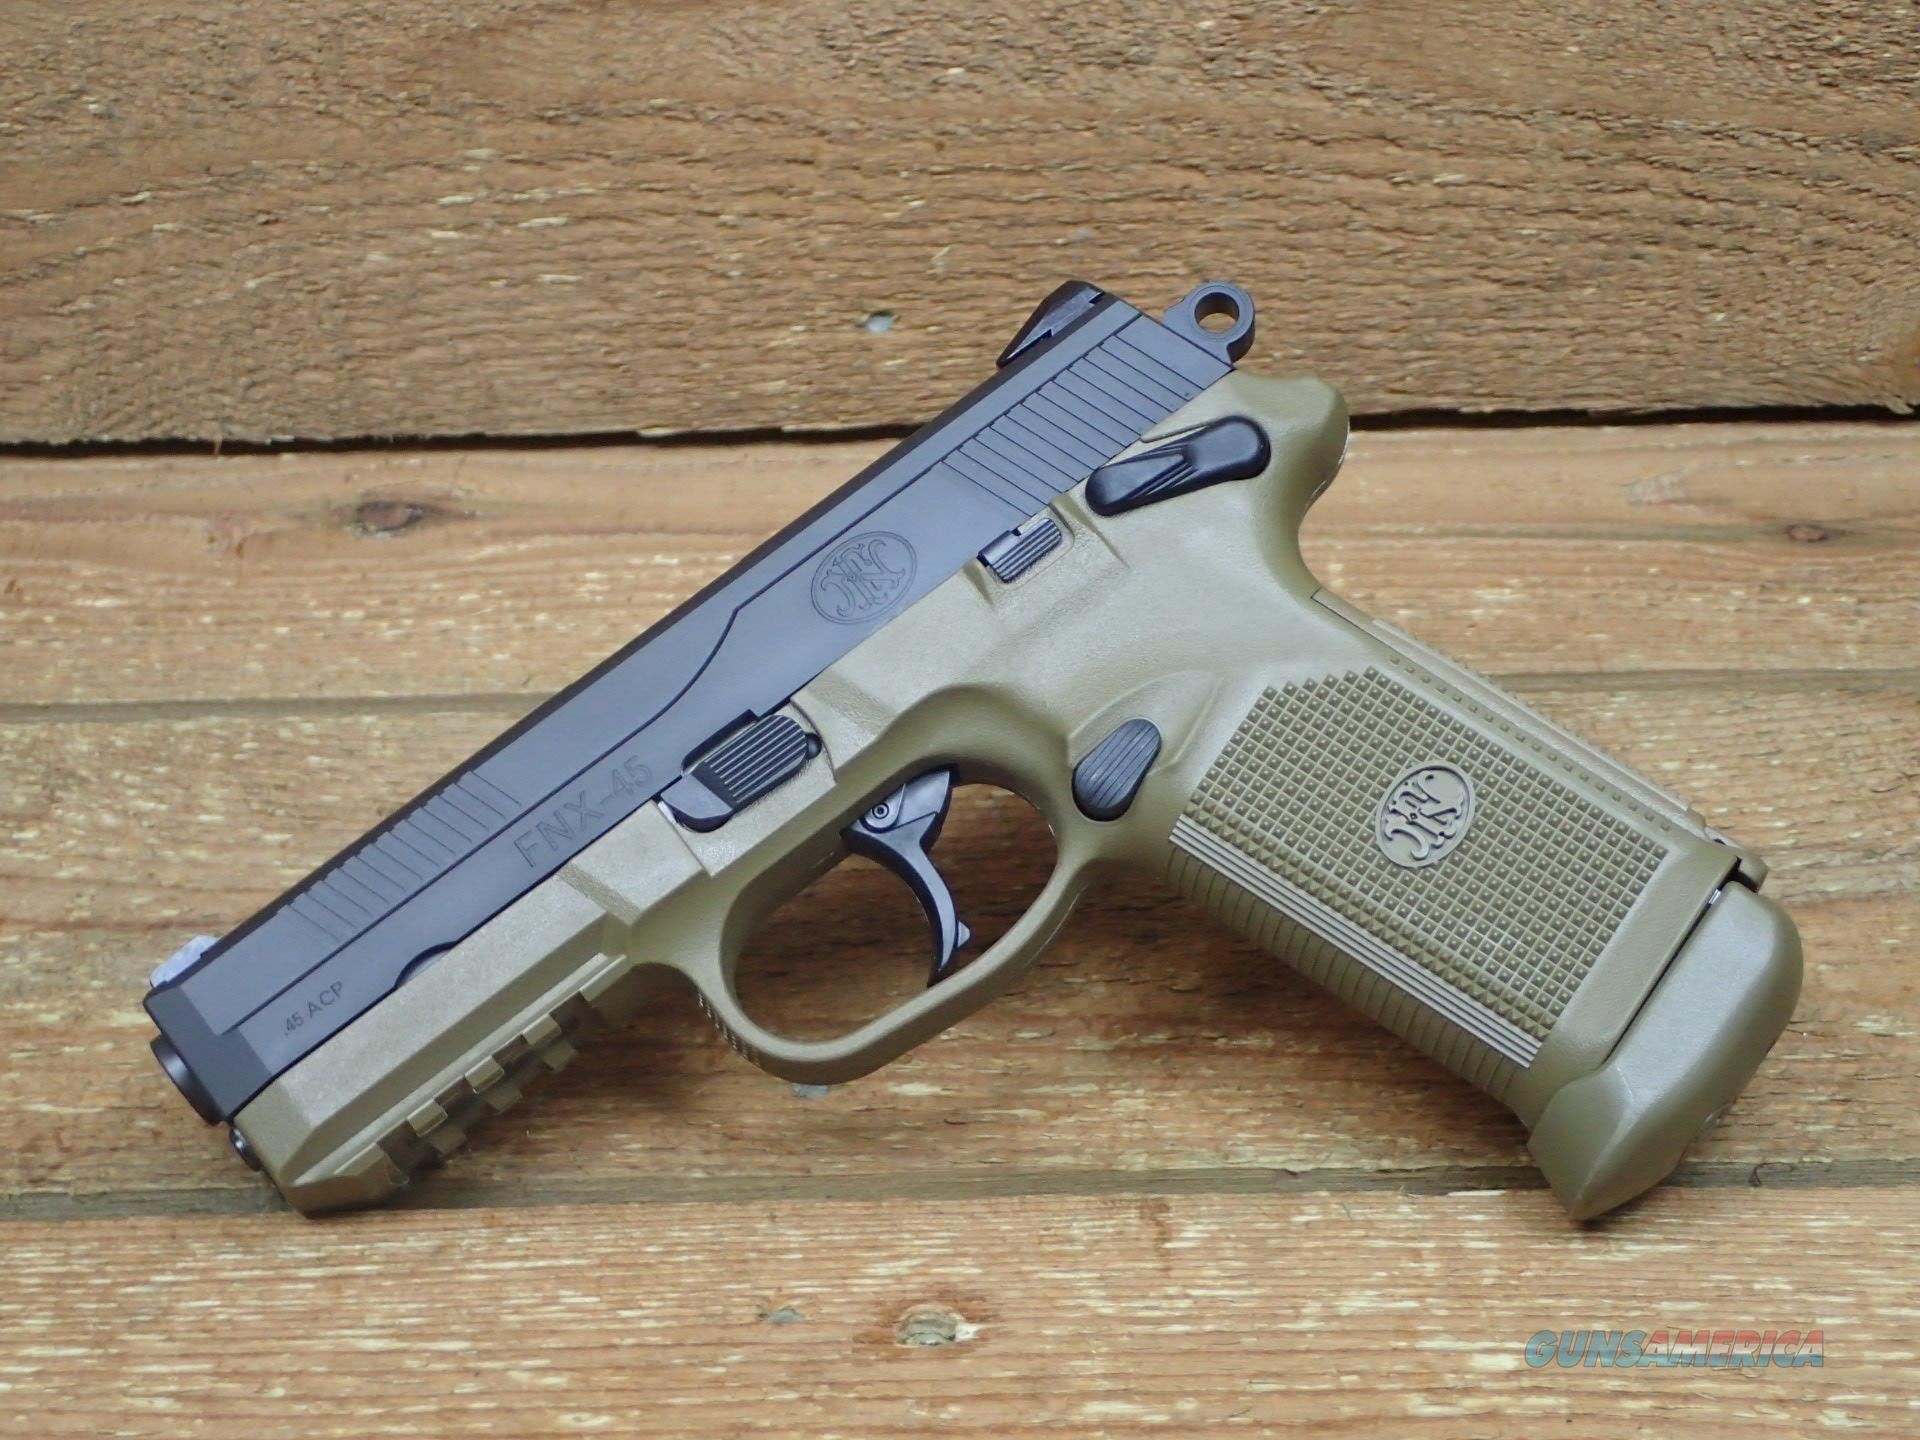 FNH FNX-45 3-15RD Mags 66964 FNX45 /EZ PAY $67 Monthly  Guns > Pistols > FNH - Fabrique Nationale (FN) Pistols > FNX